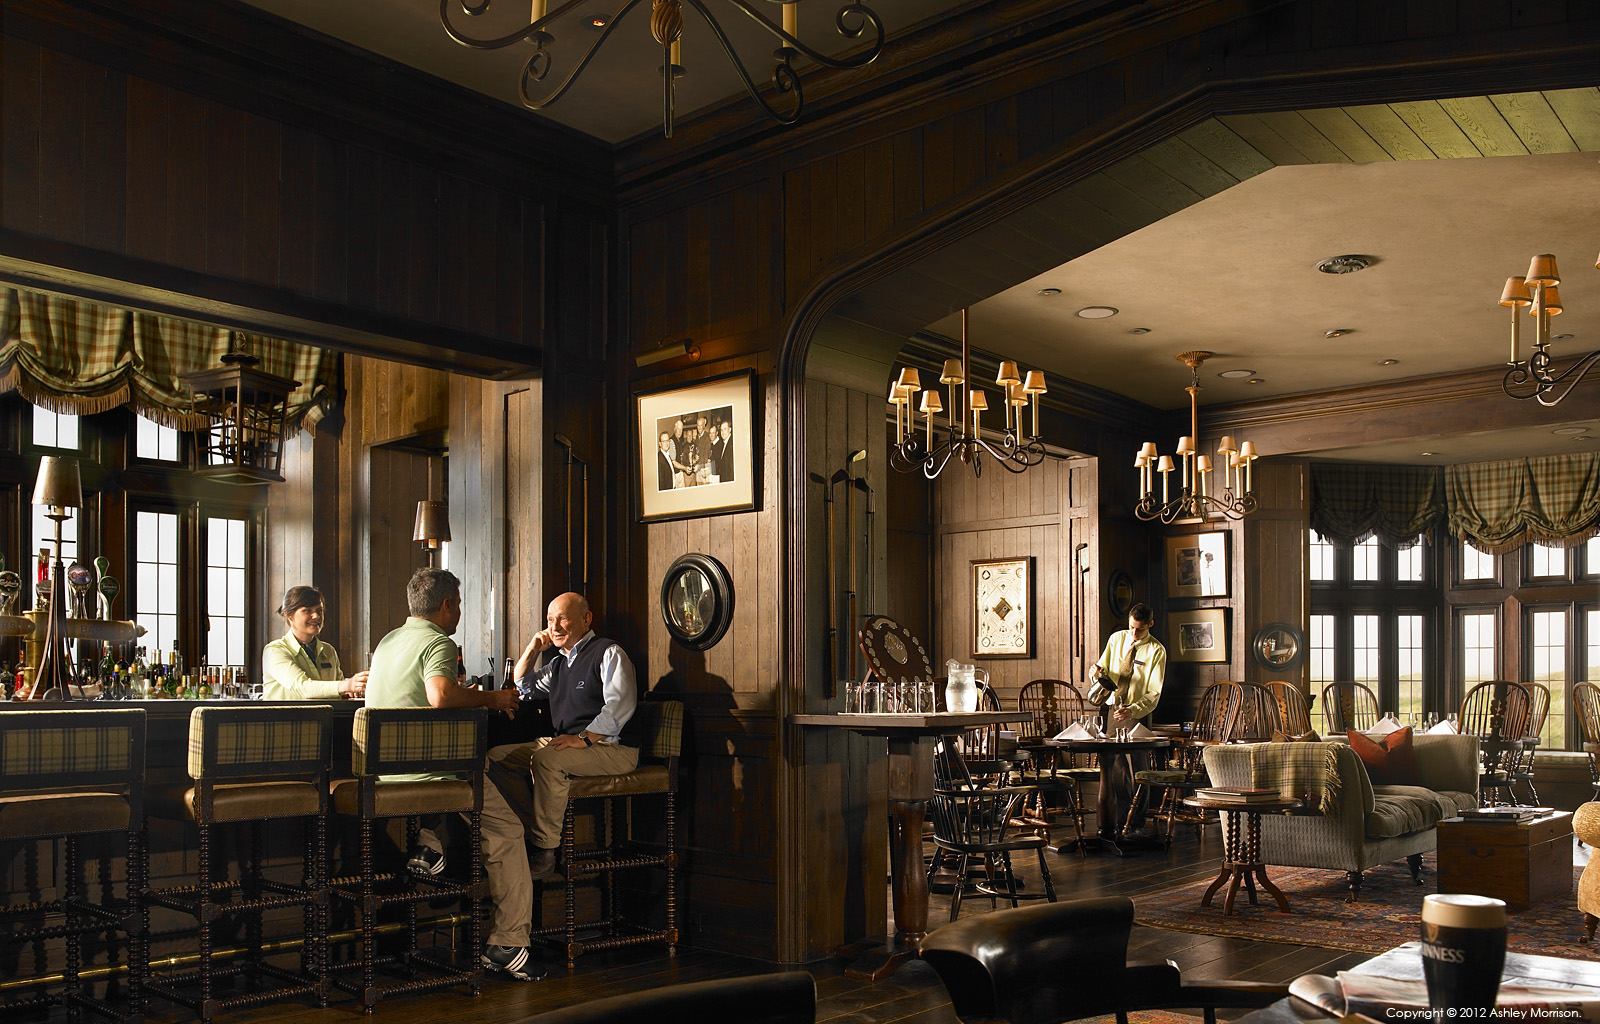 The bar in the Member's Clubhouse at the Trump International Golf Links & Hotel in County Clare by Ashley Morrison.